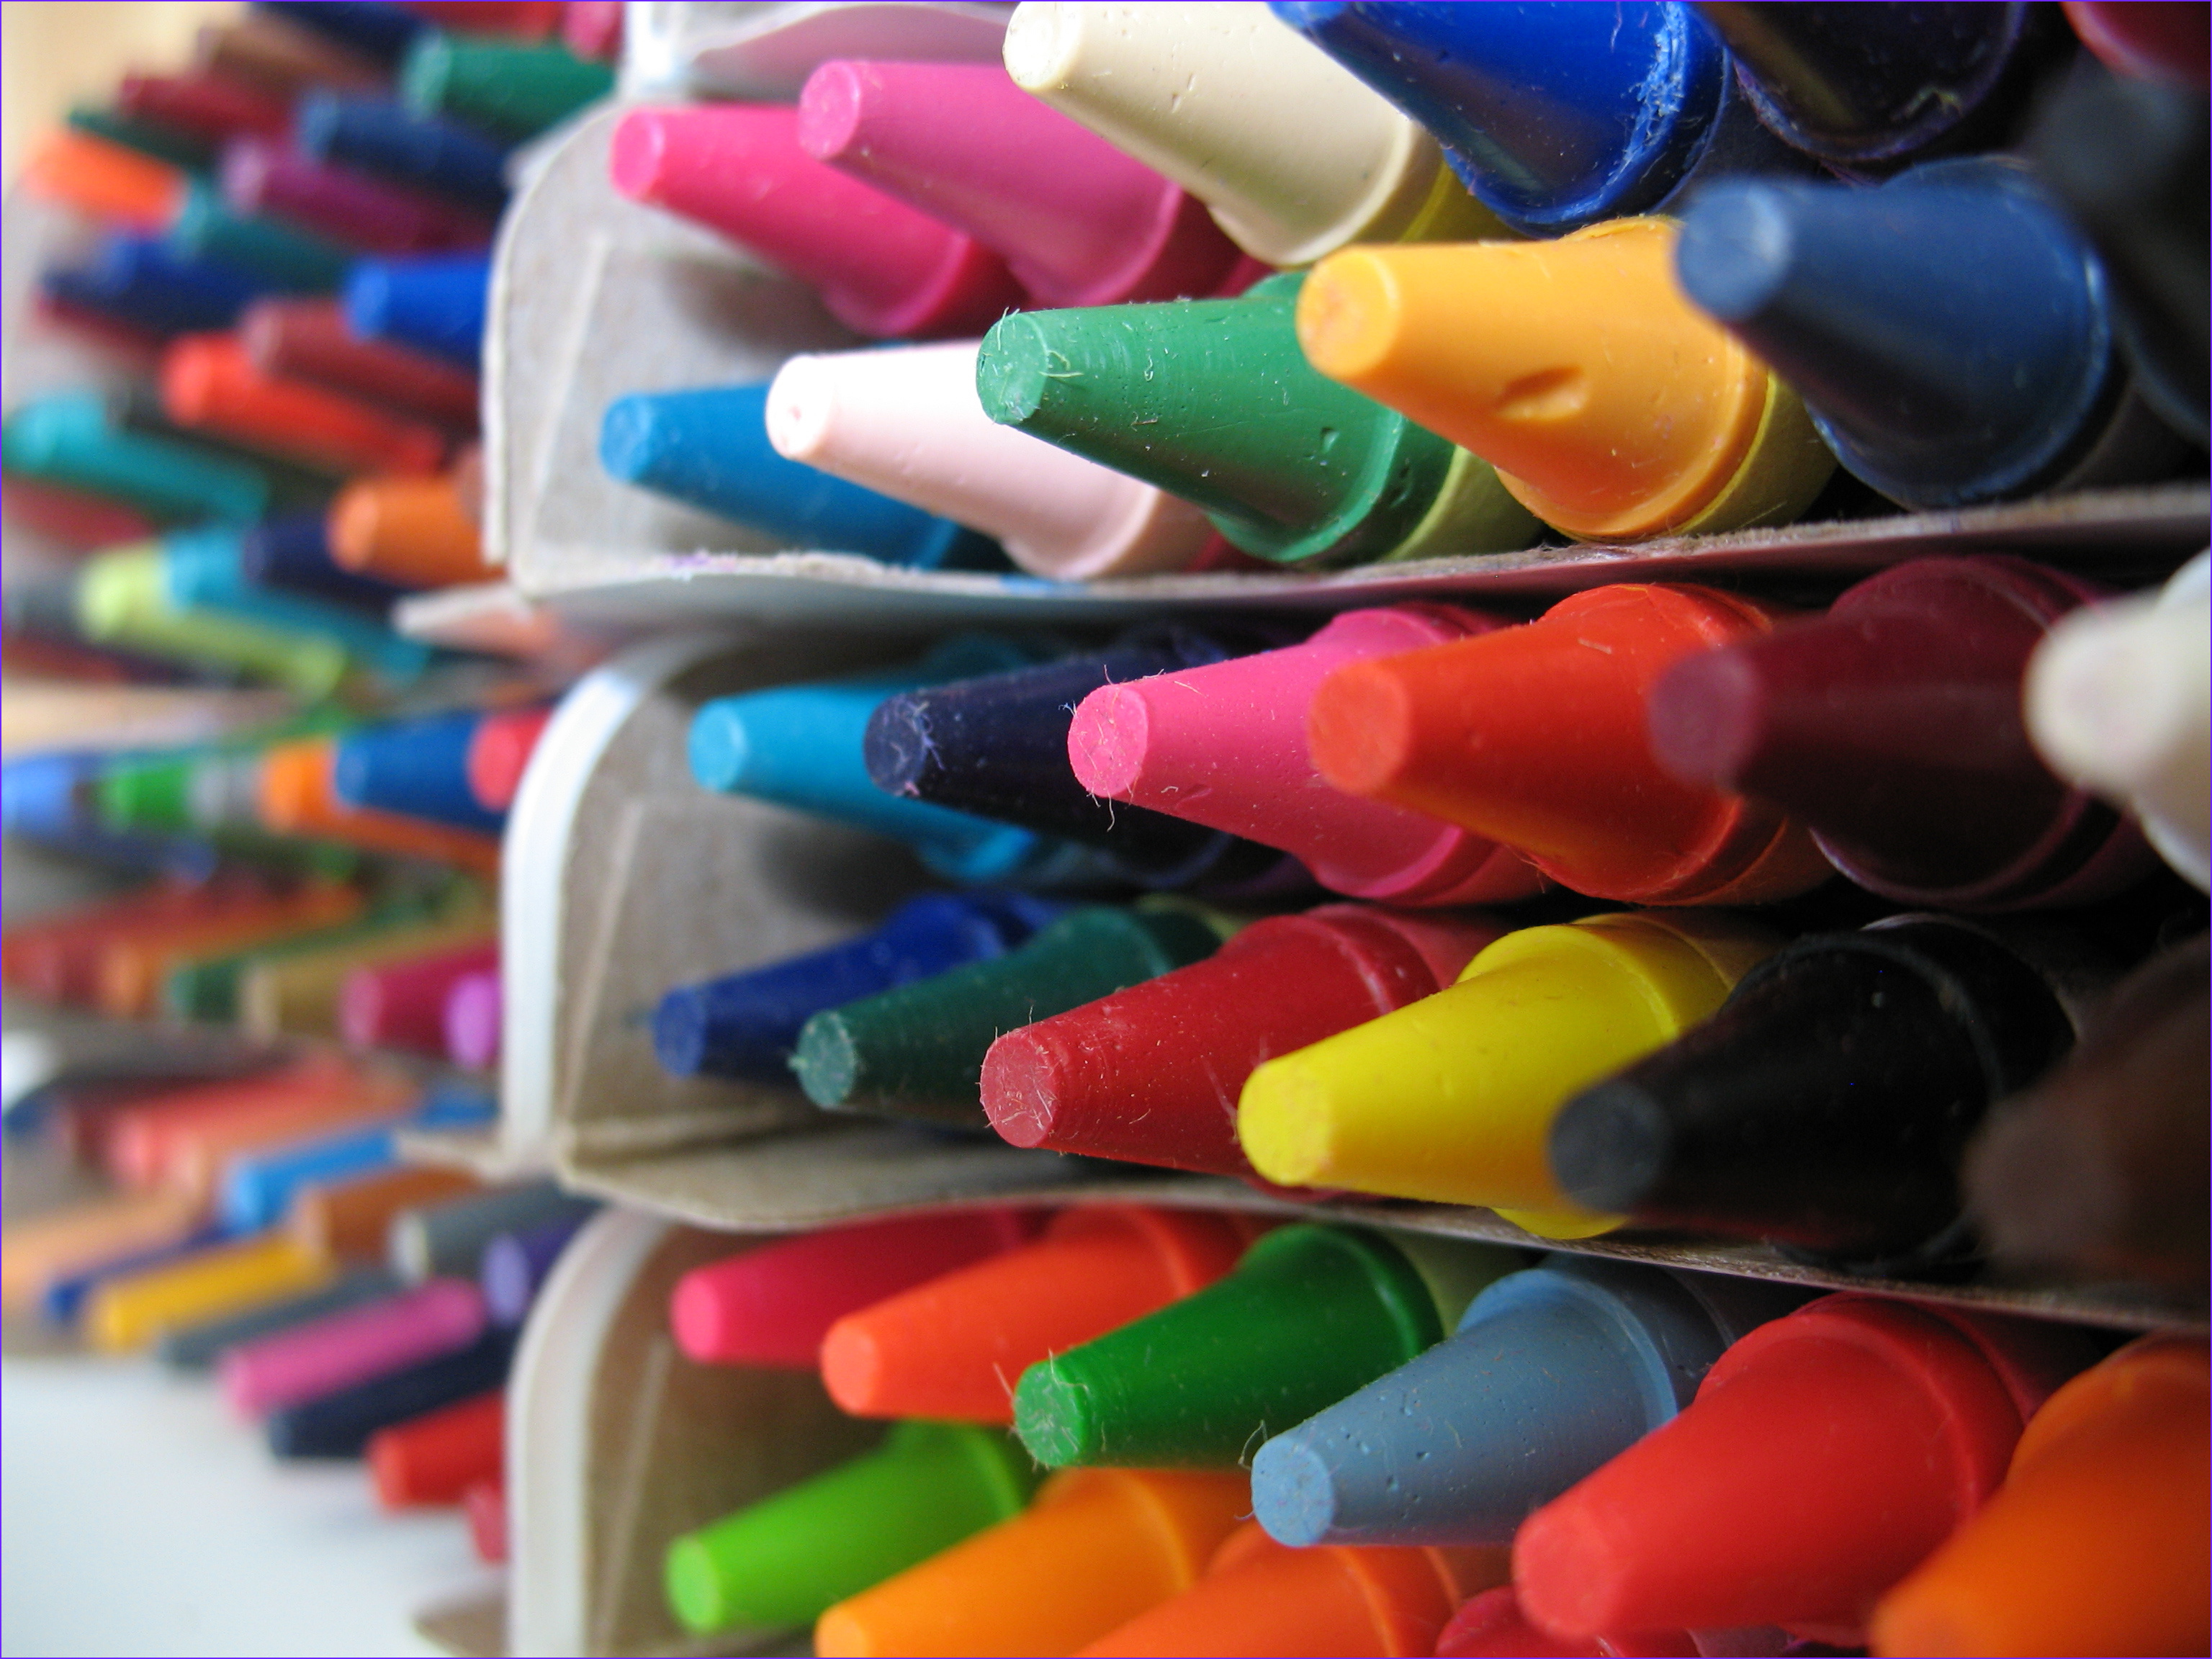 crayons color books conspiracy theories